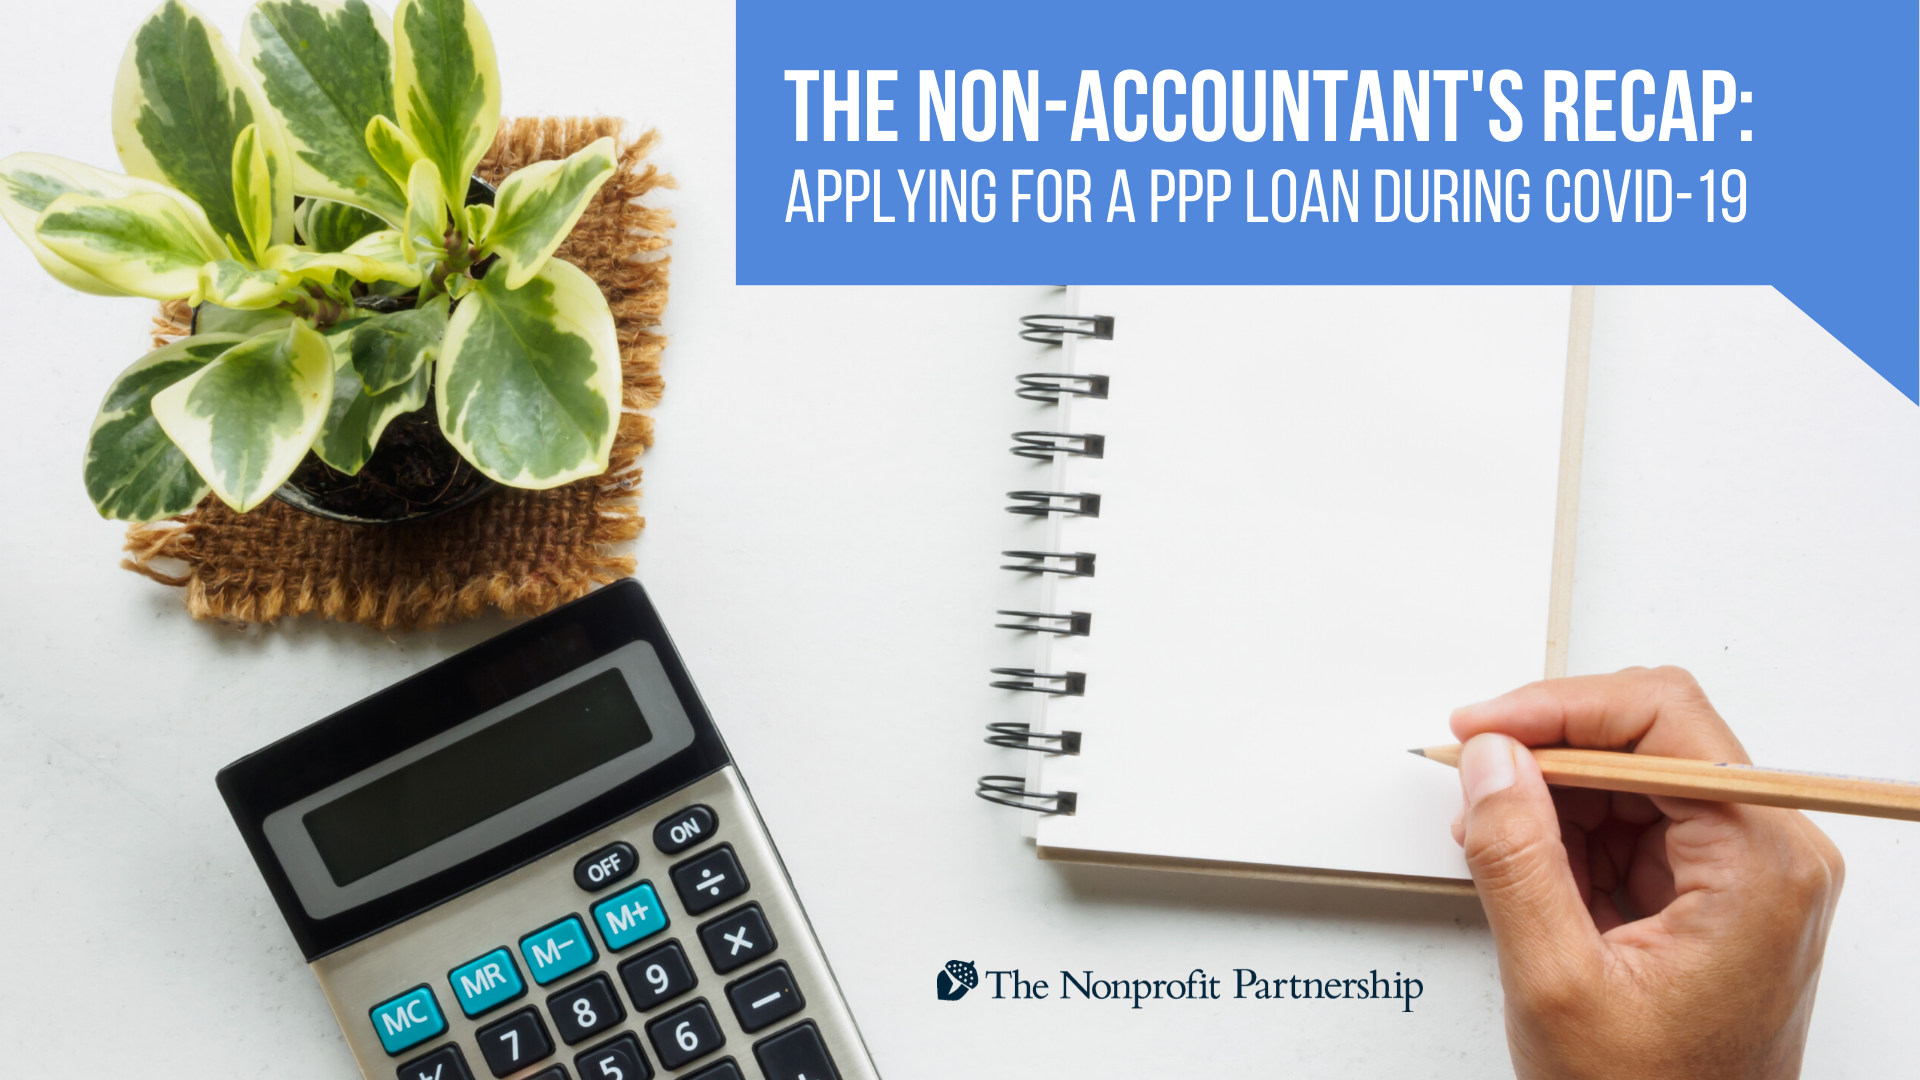 The Non-Accountant's Recap: Applying for a Paycheck Protection Program Loan During the Pandemic